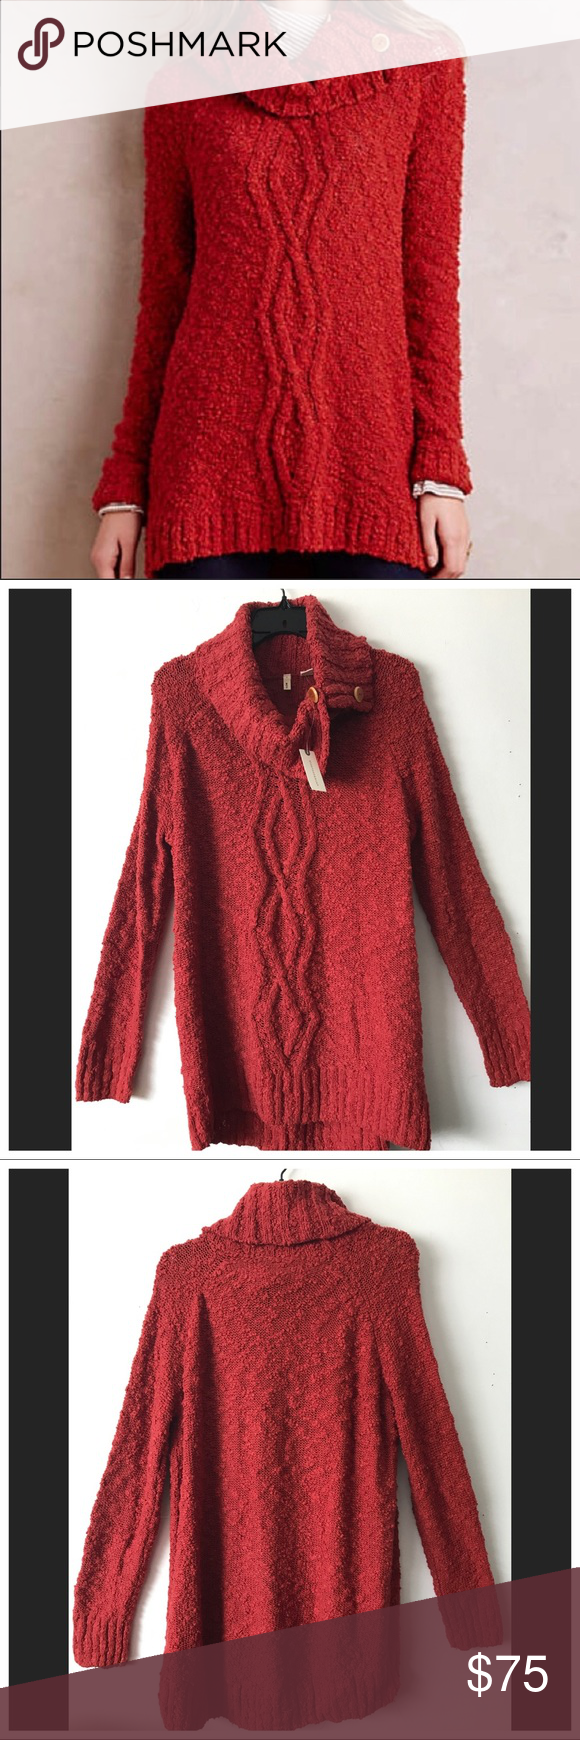 NWT Anthropologie Moth Button Cowl Neck Sweater L Boutique | Cowl ...